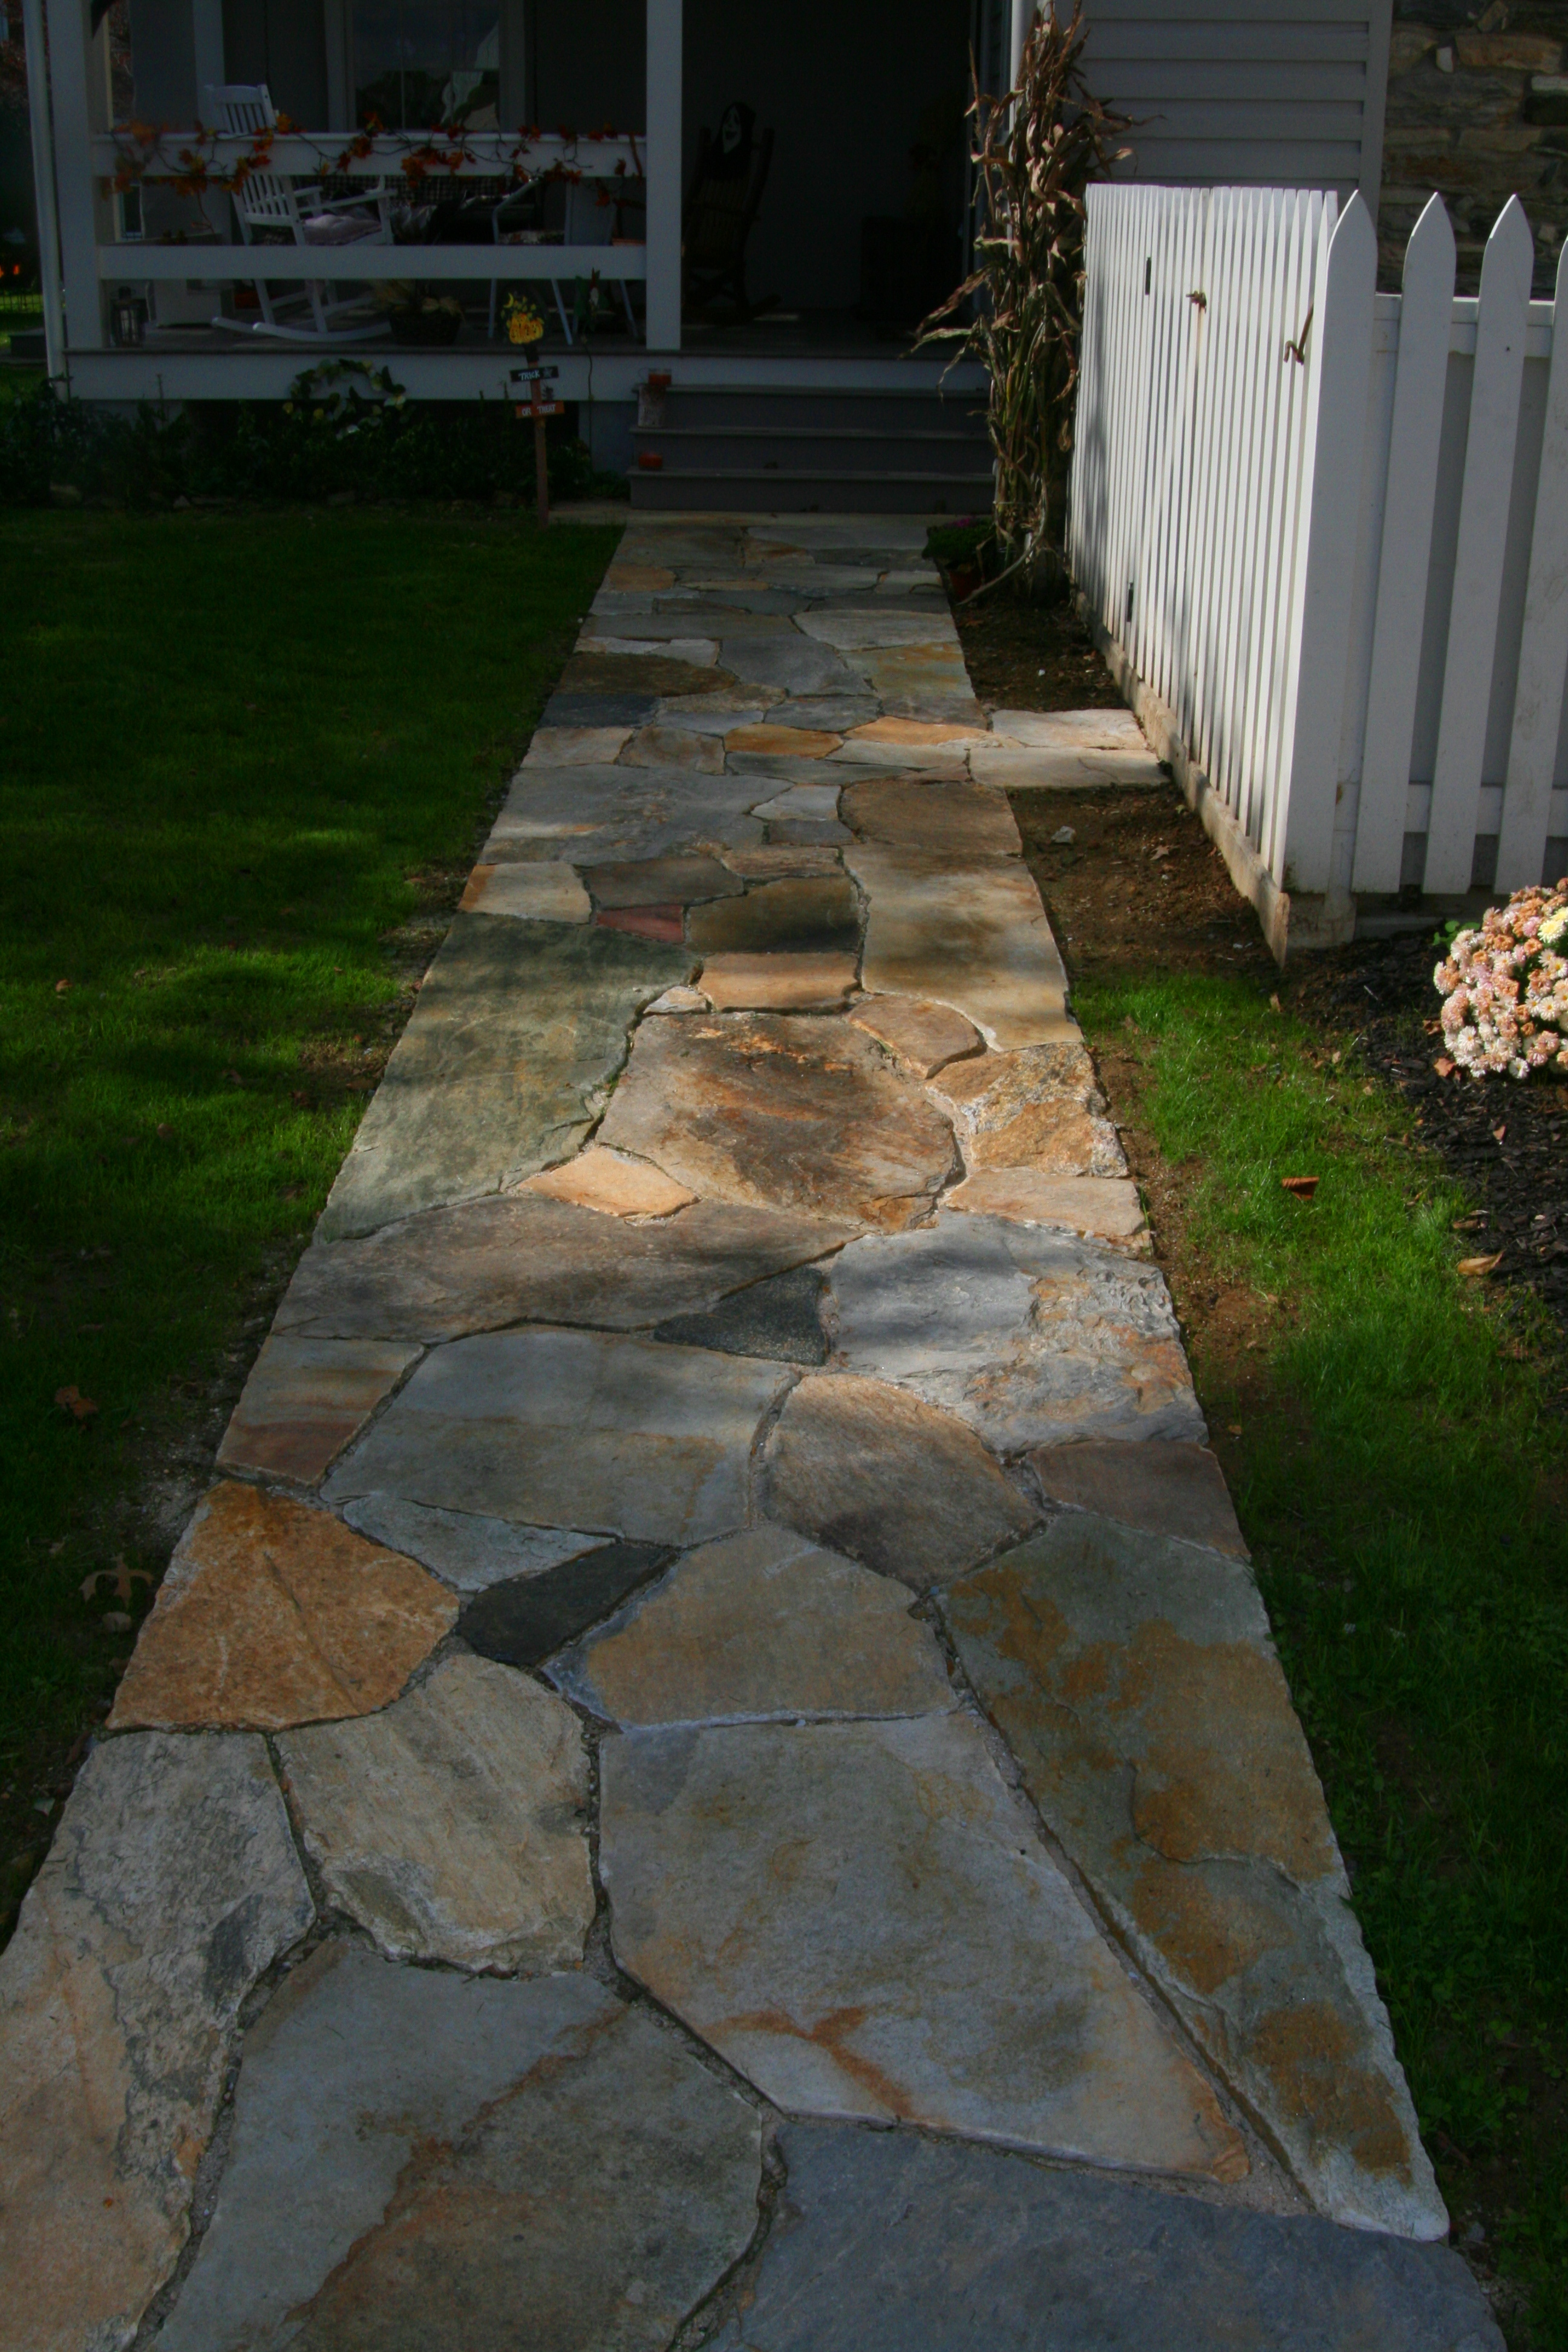 Genial A Newly Installed Stone Sidewalk Leading Up To A Porch